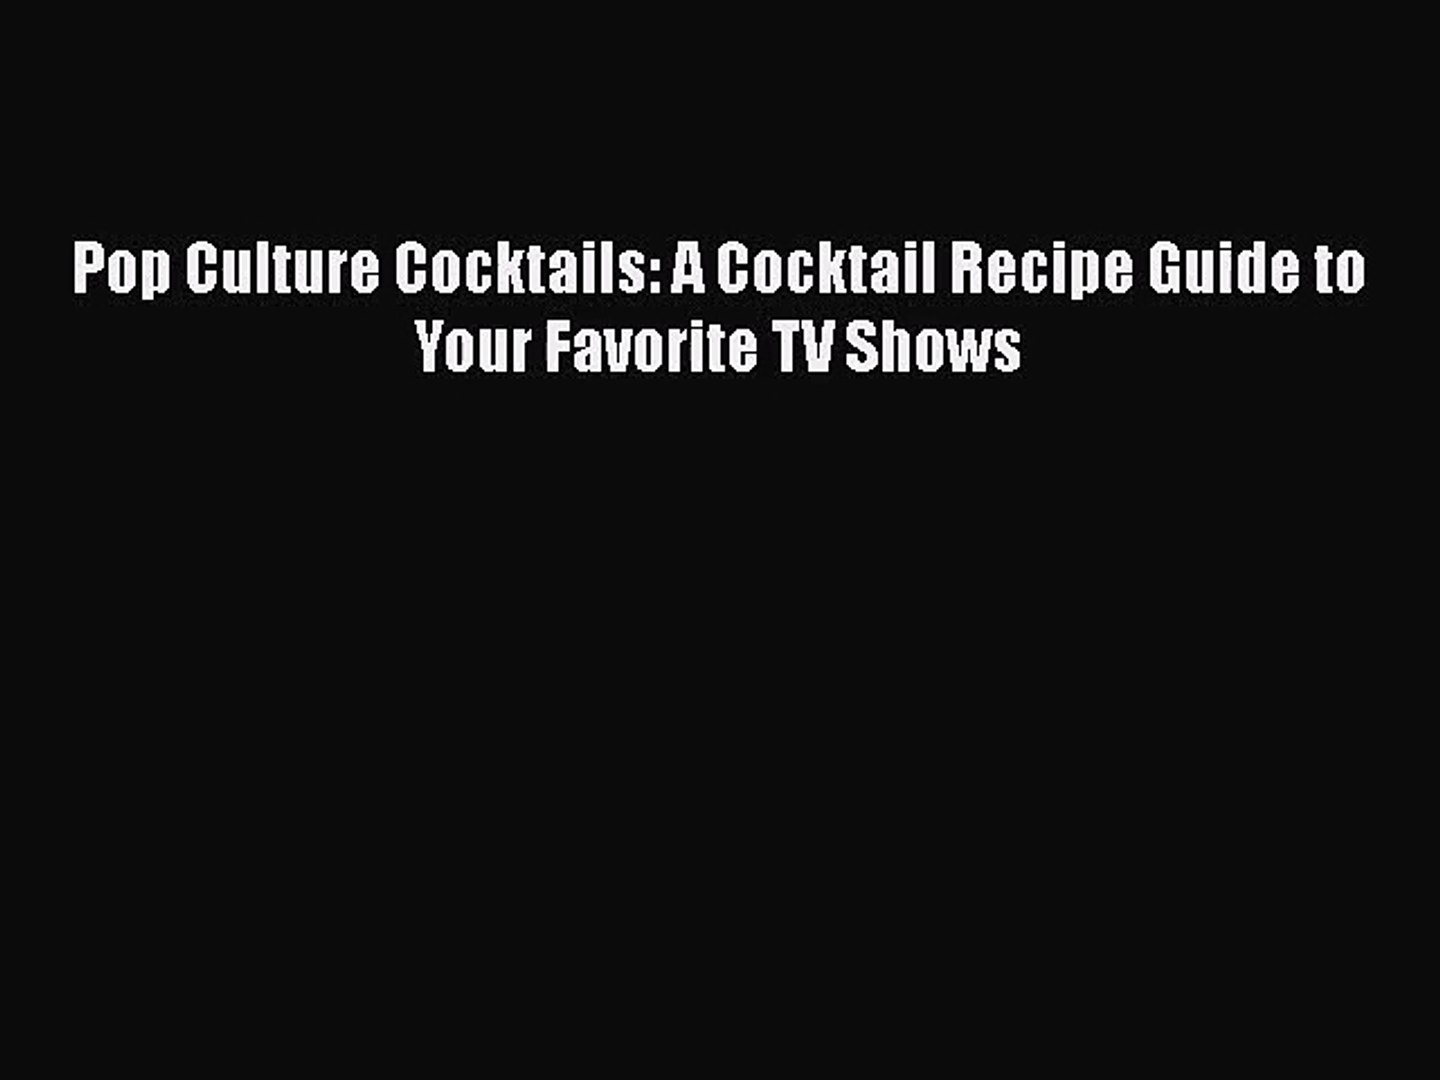 Read Pop Culture Cocktails: A Cocktail Recipe Guide to Your Favorite TV Shows Ebook Free